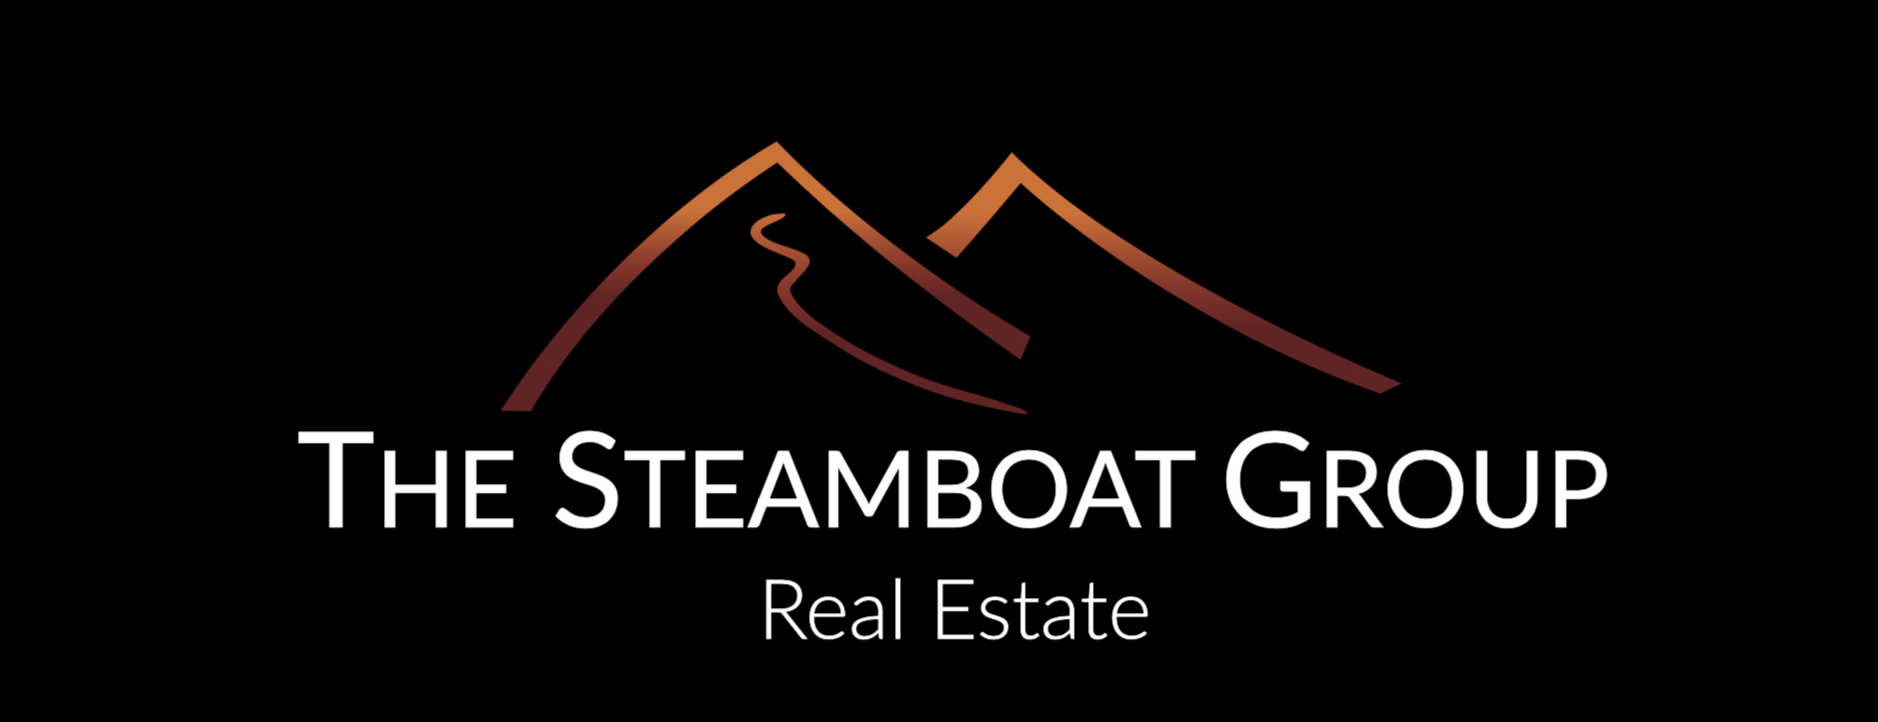 The Steamboat Group - Real Estate logo